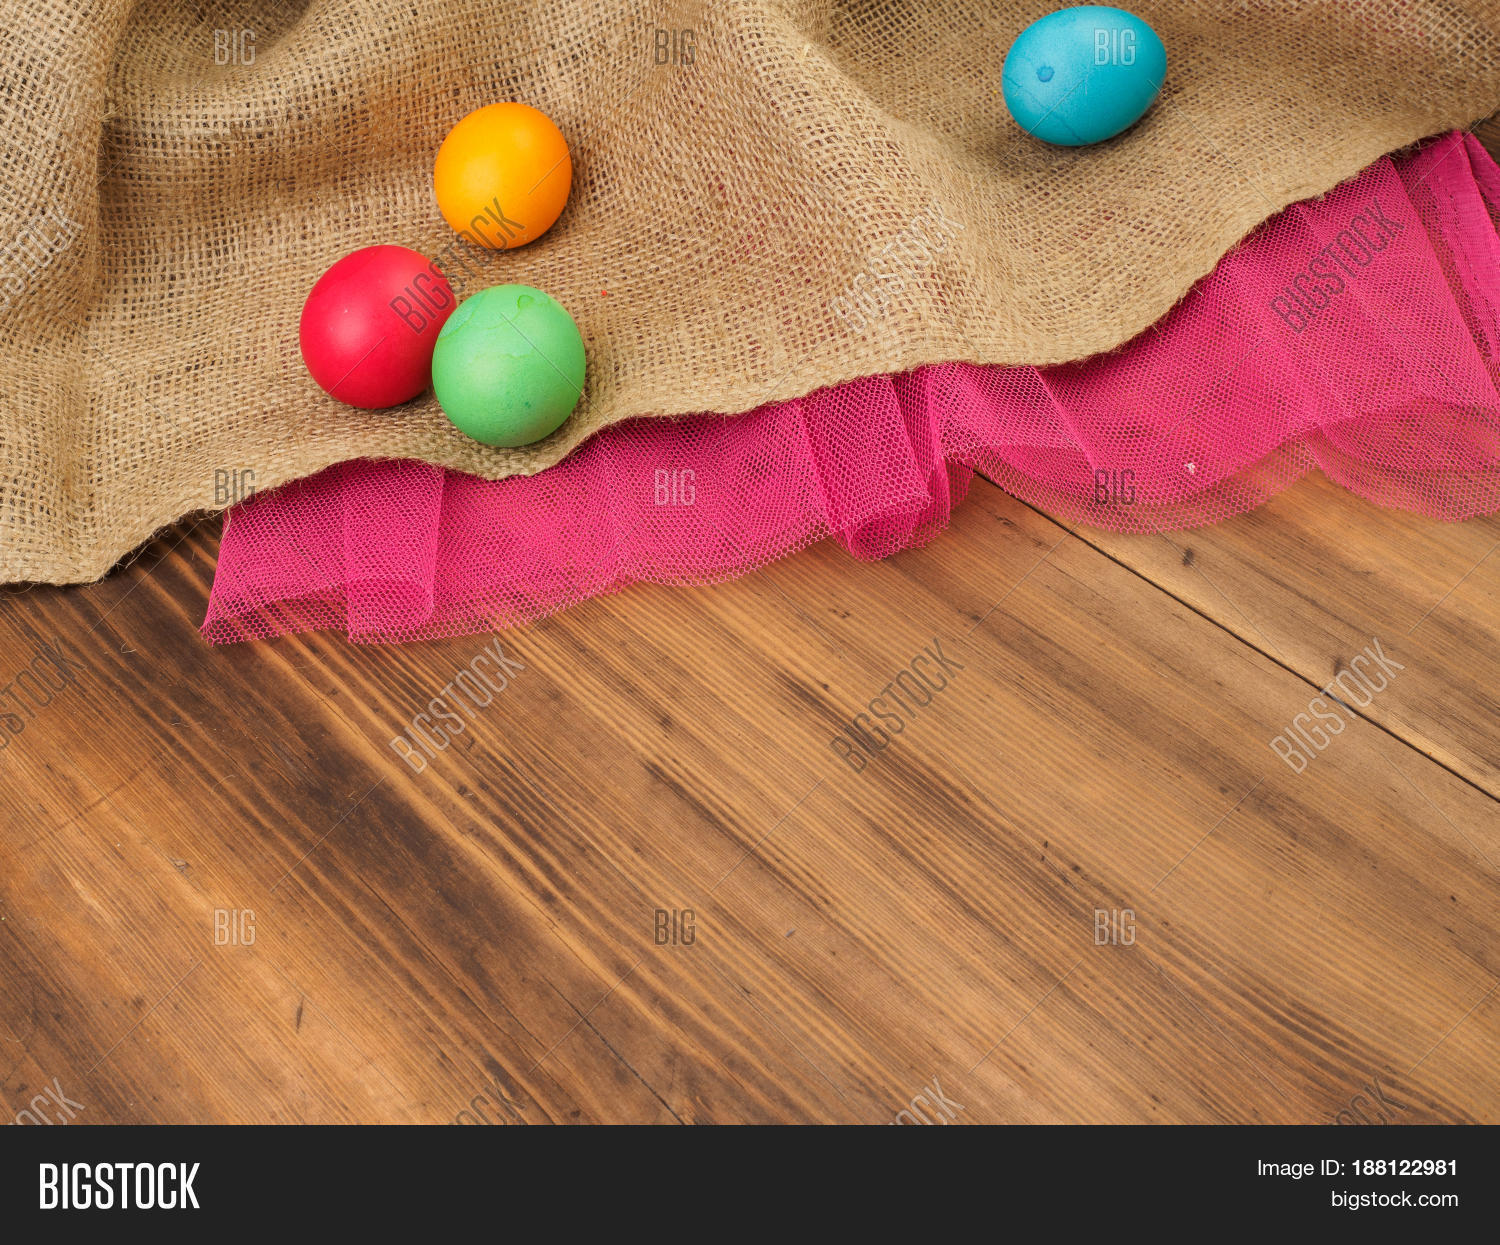 Easter Colored Egg Image Photo Free Trial Bigstock